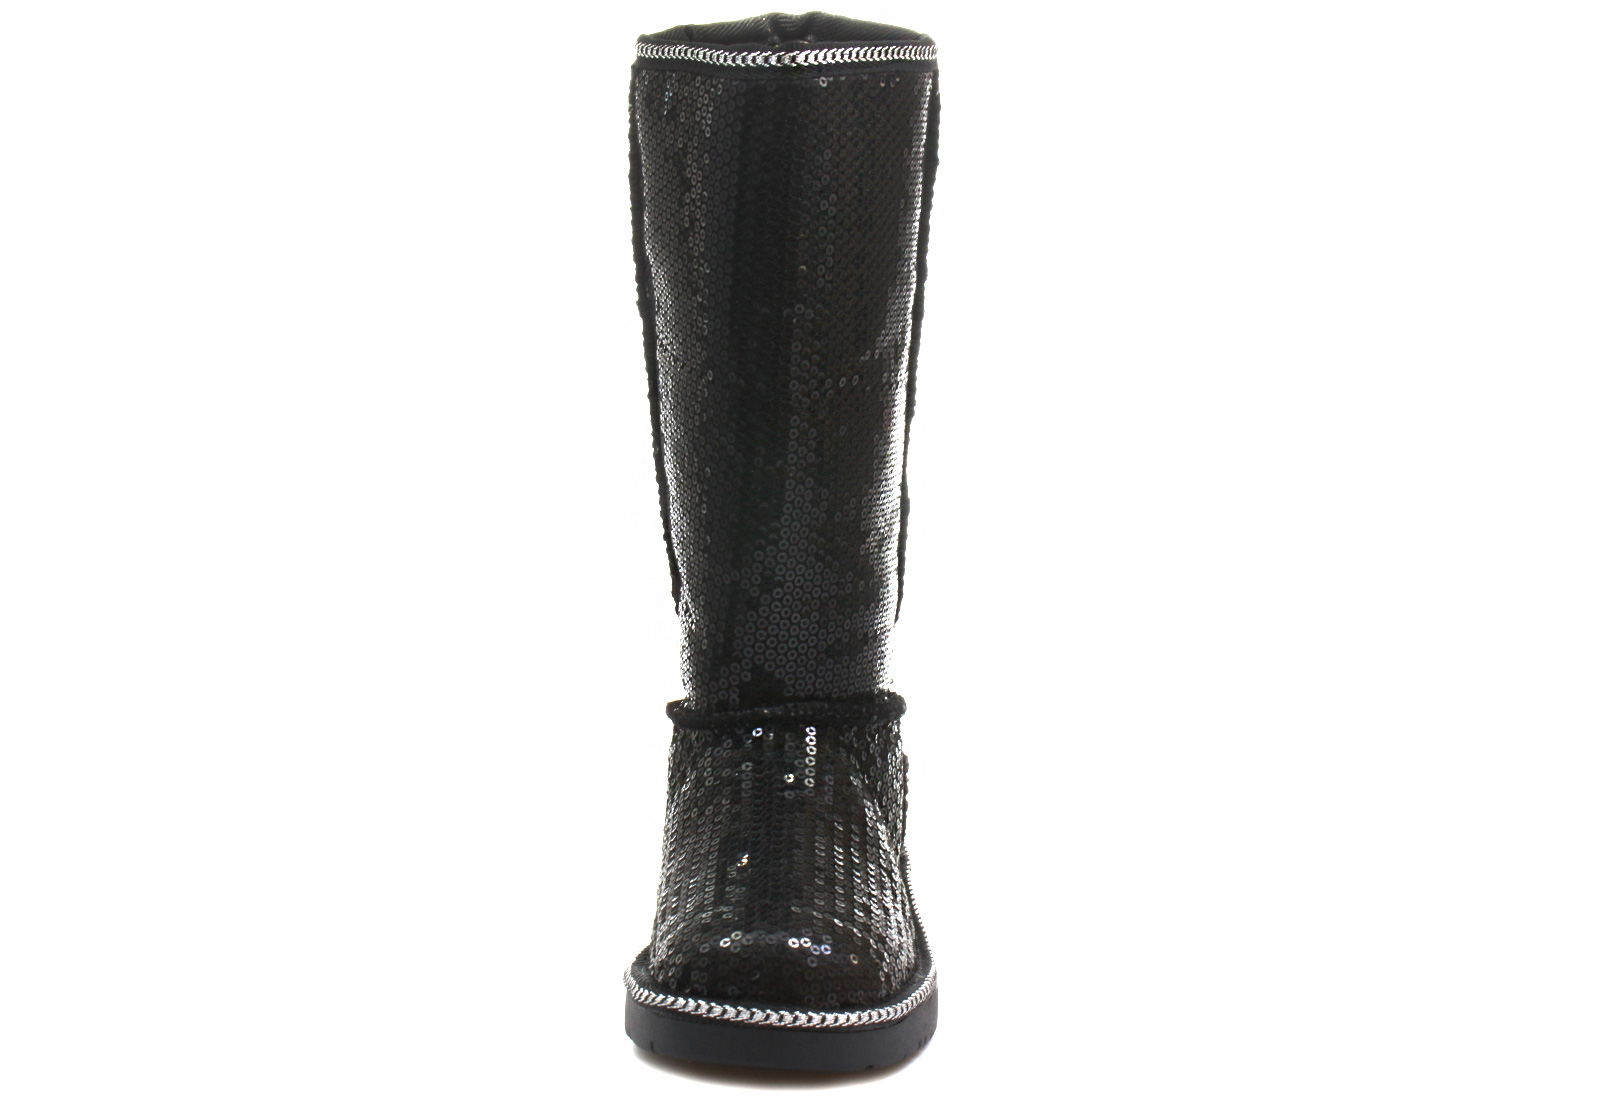 Skechers Boots Glamslam Bonfire Glam 88931L BLK Online shop for sneakers, shoes and boots